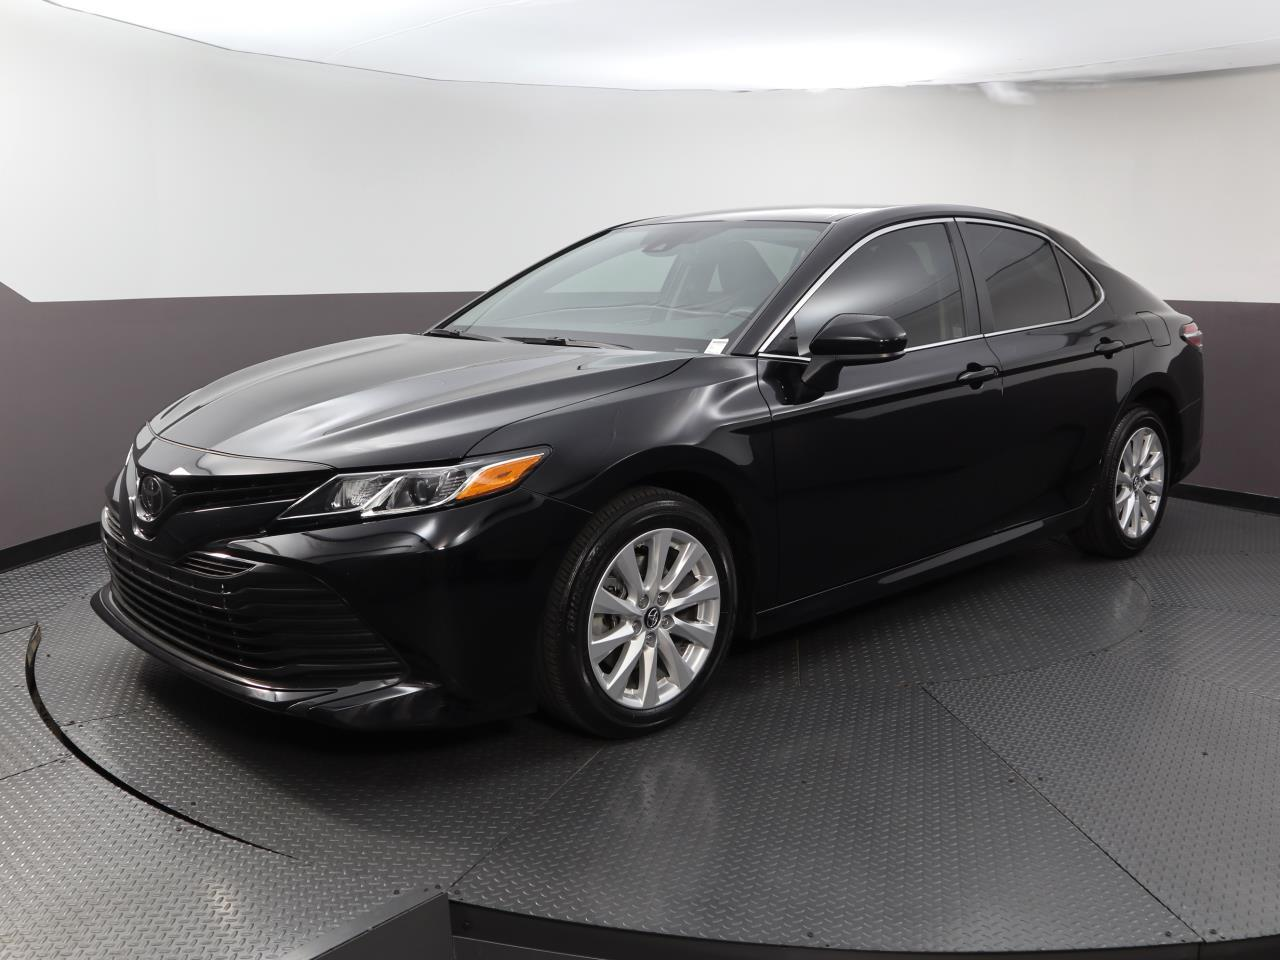 Used TOYOTA CAMRY 2019 WEST PALM LE